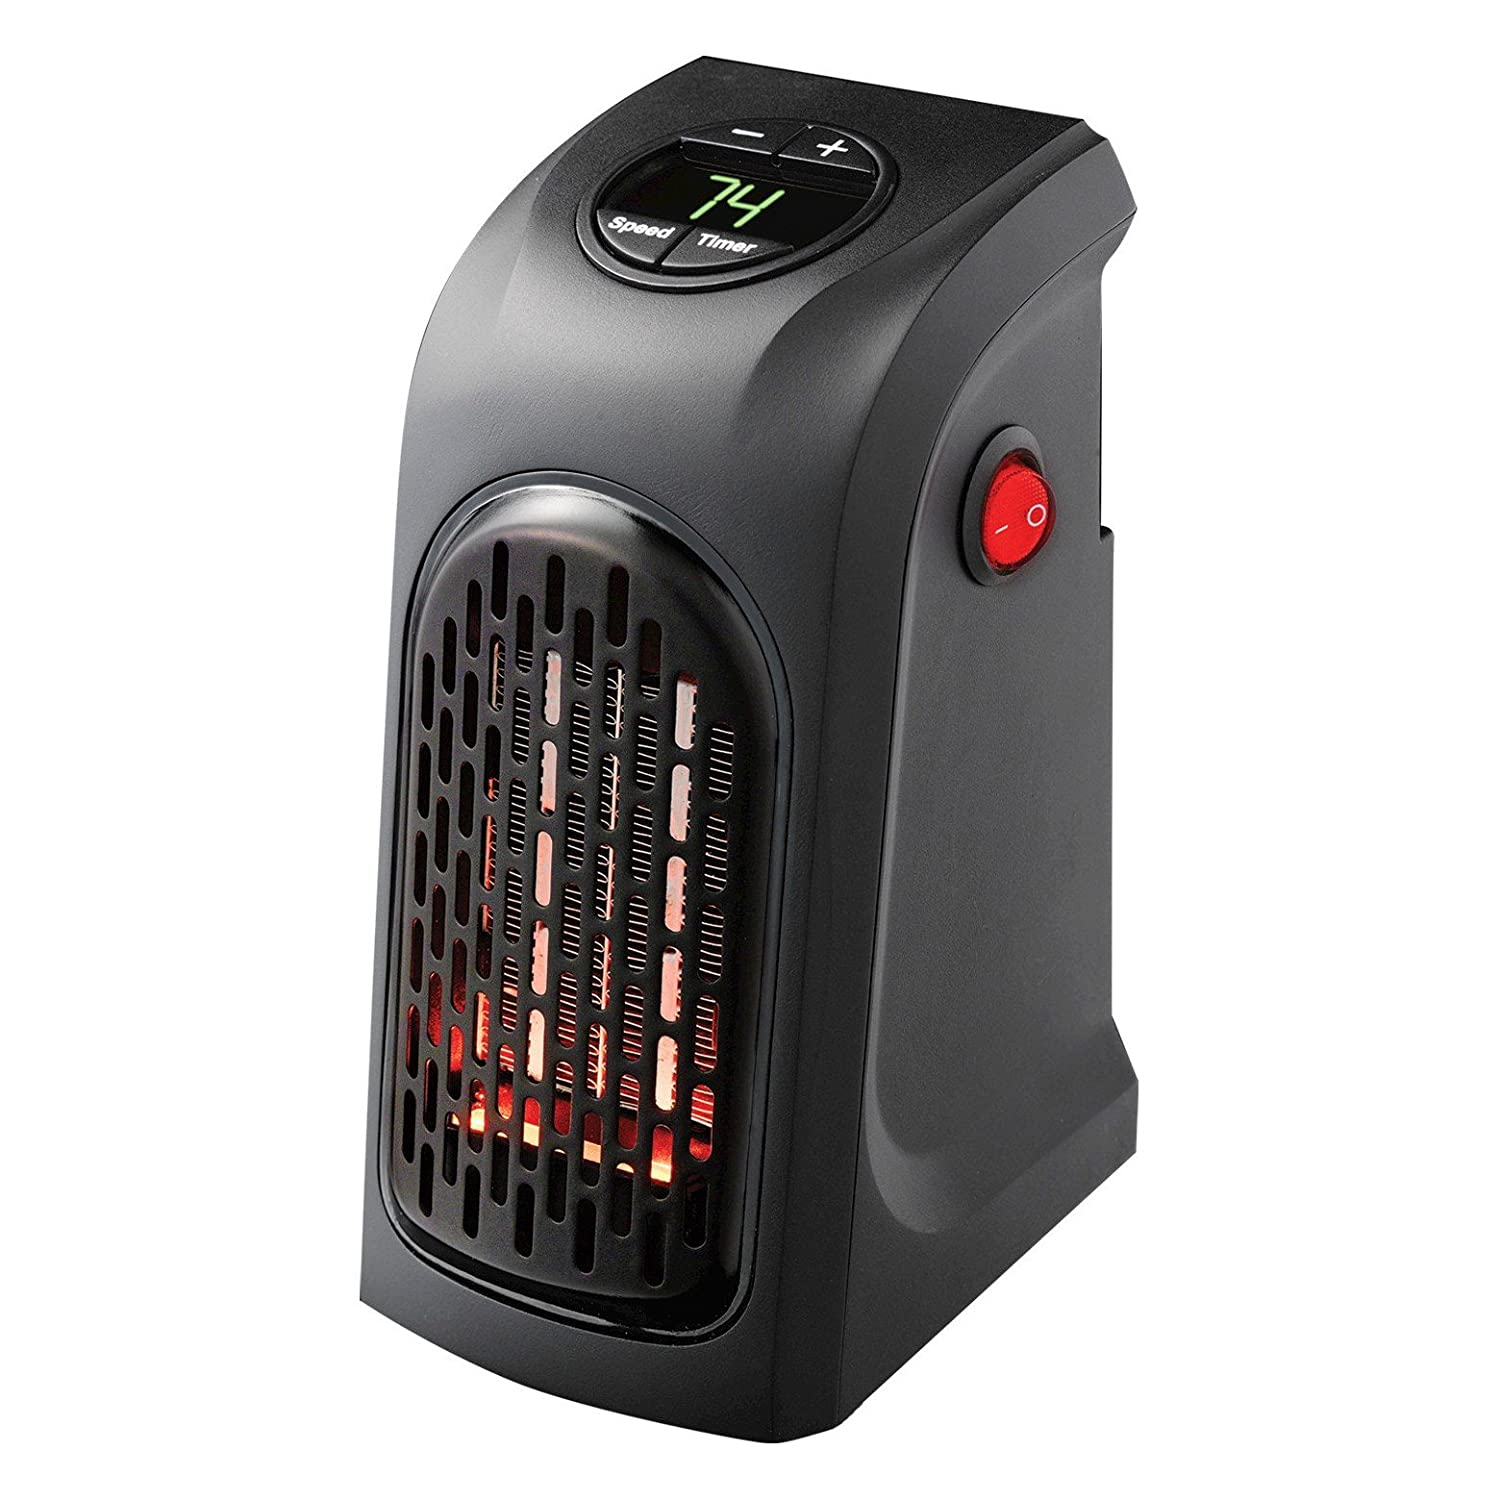 Handy Heater 142598 Plug-in Personal Heater UnAssigned